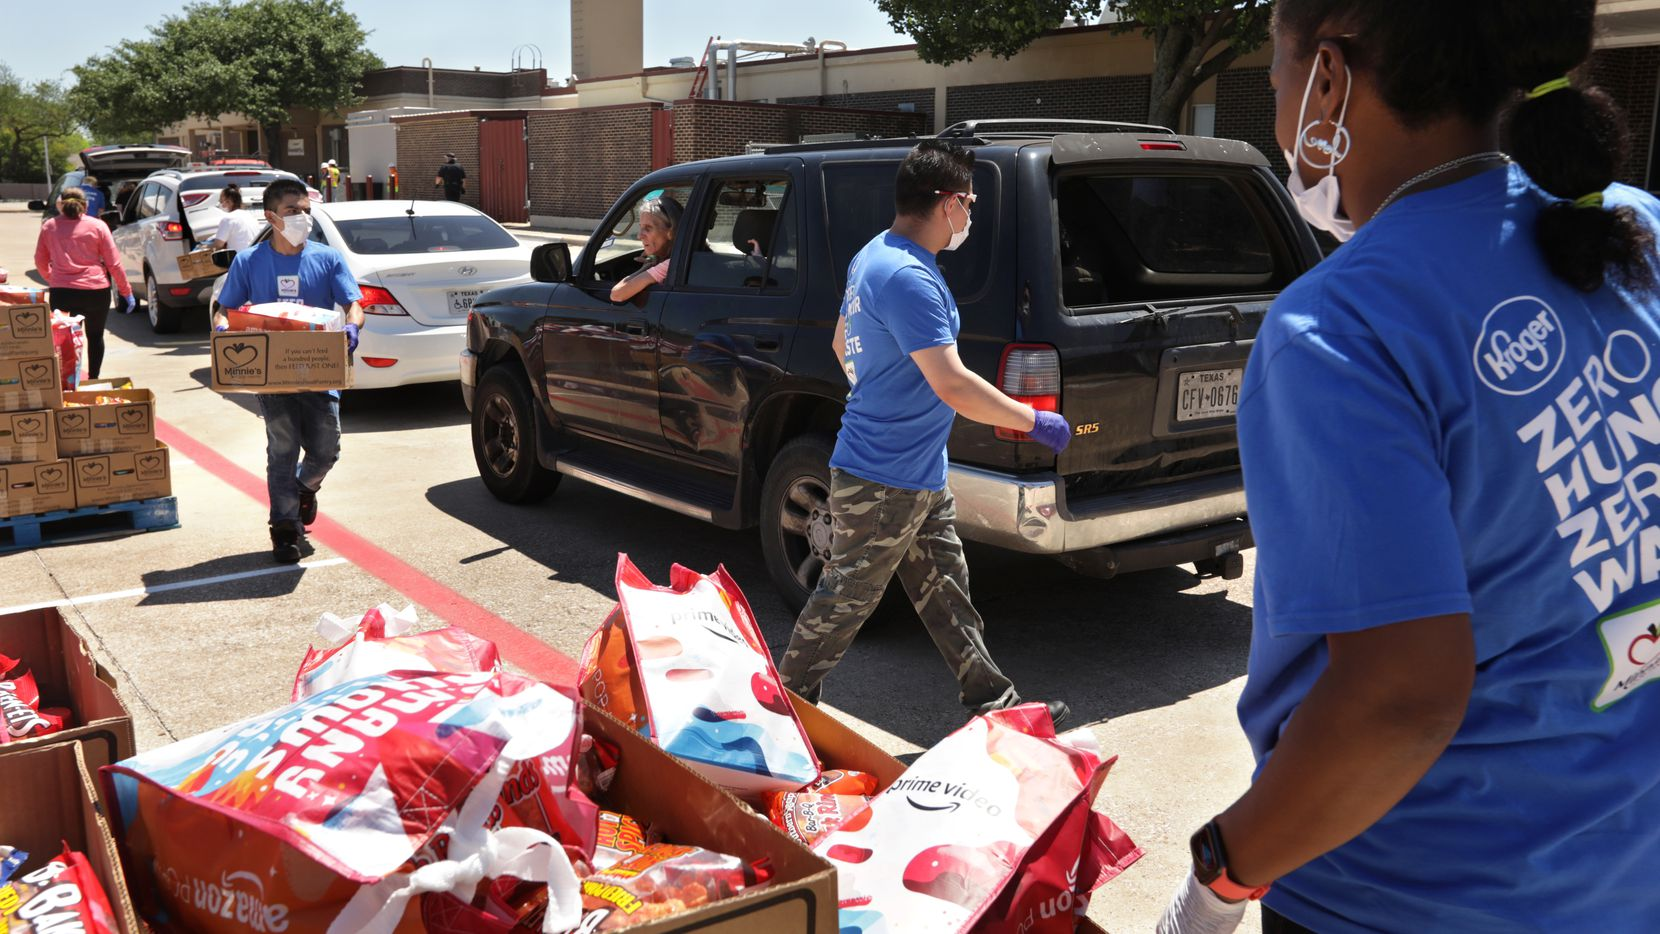 This file photo shows volunteers with Minnie's Food Pantry. Plano ISD has a partnership with the food pantry, which helps to feed students whose households may be facing food insecurity. Here volunteers are serving more than 750 families at Bowman Middle School in Plano.